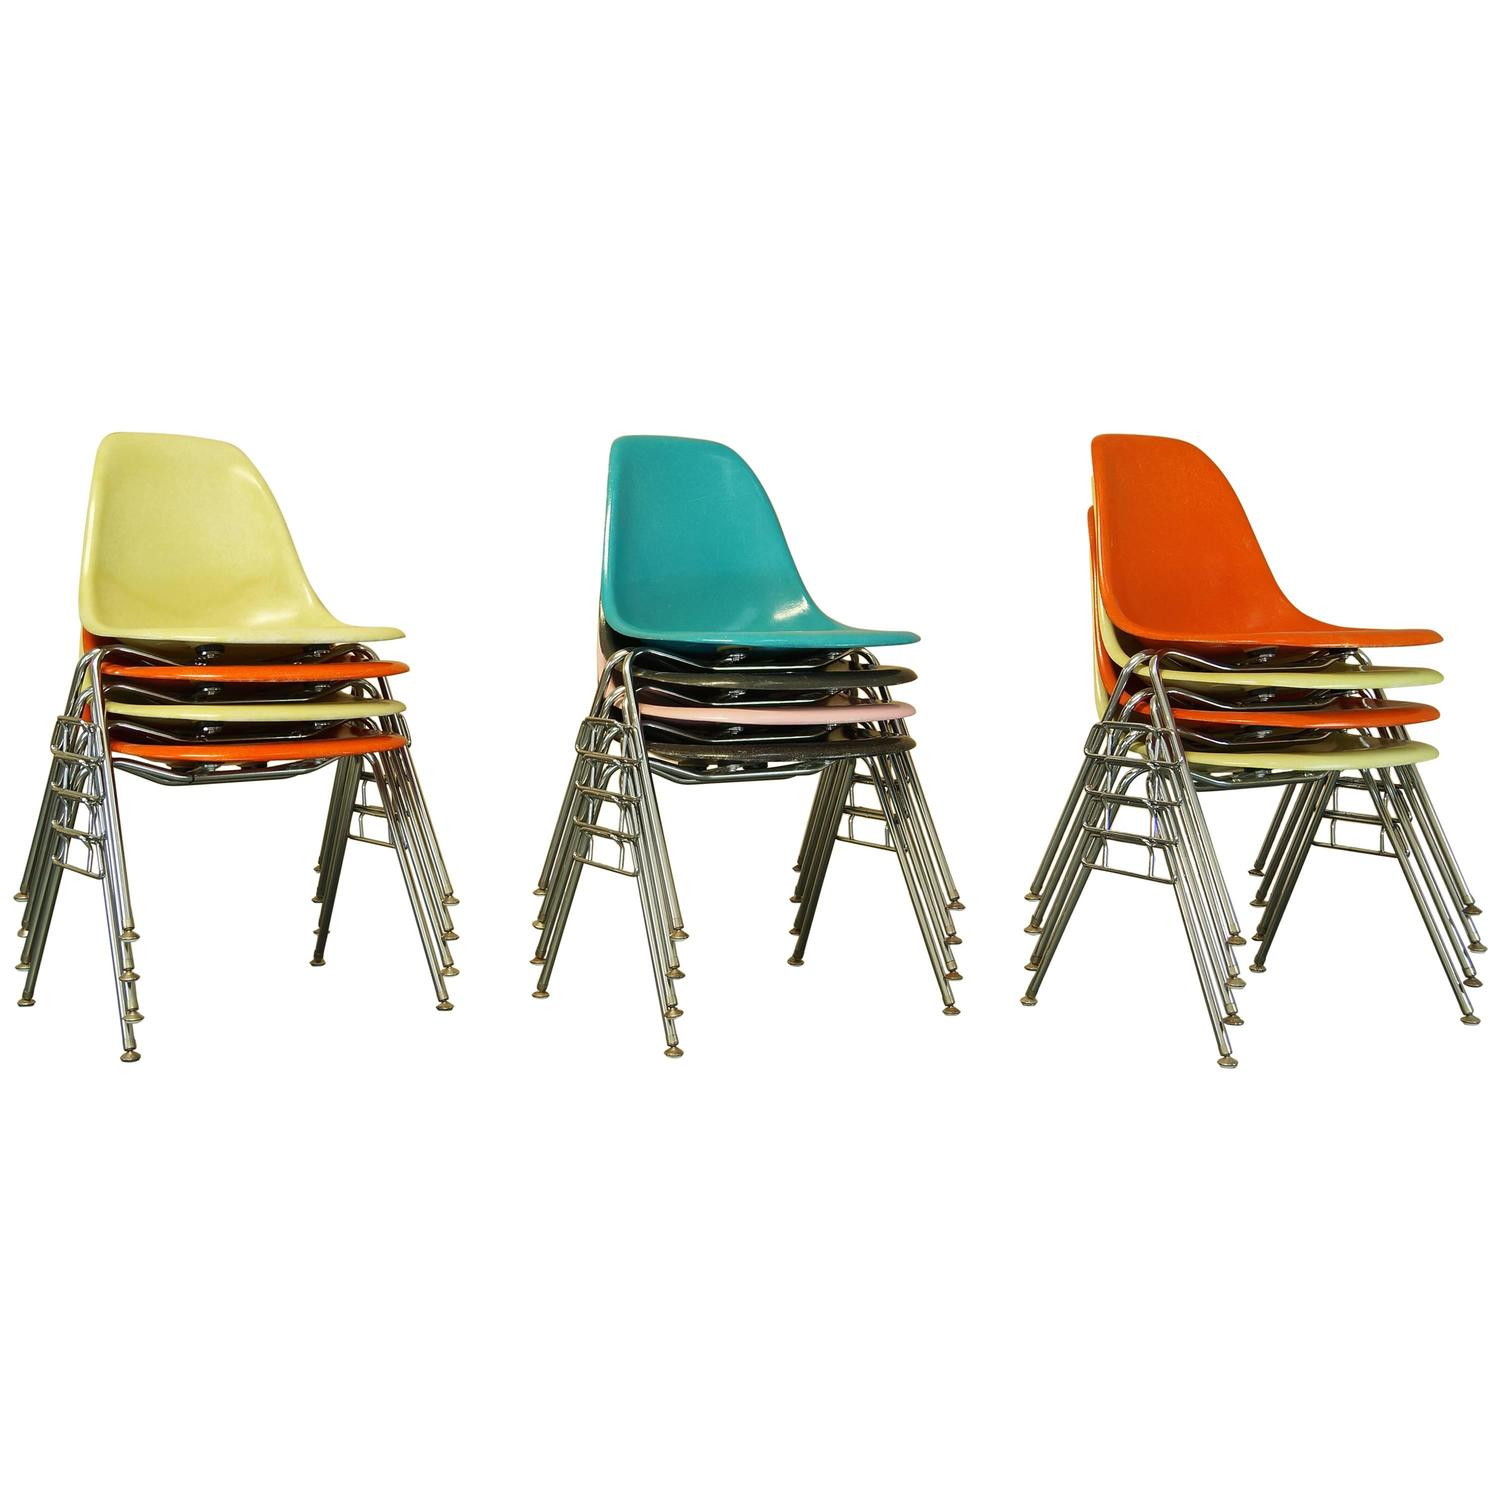 Vintage Mid Century Eames Fiberglass Stacking Shell Chairs